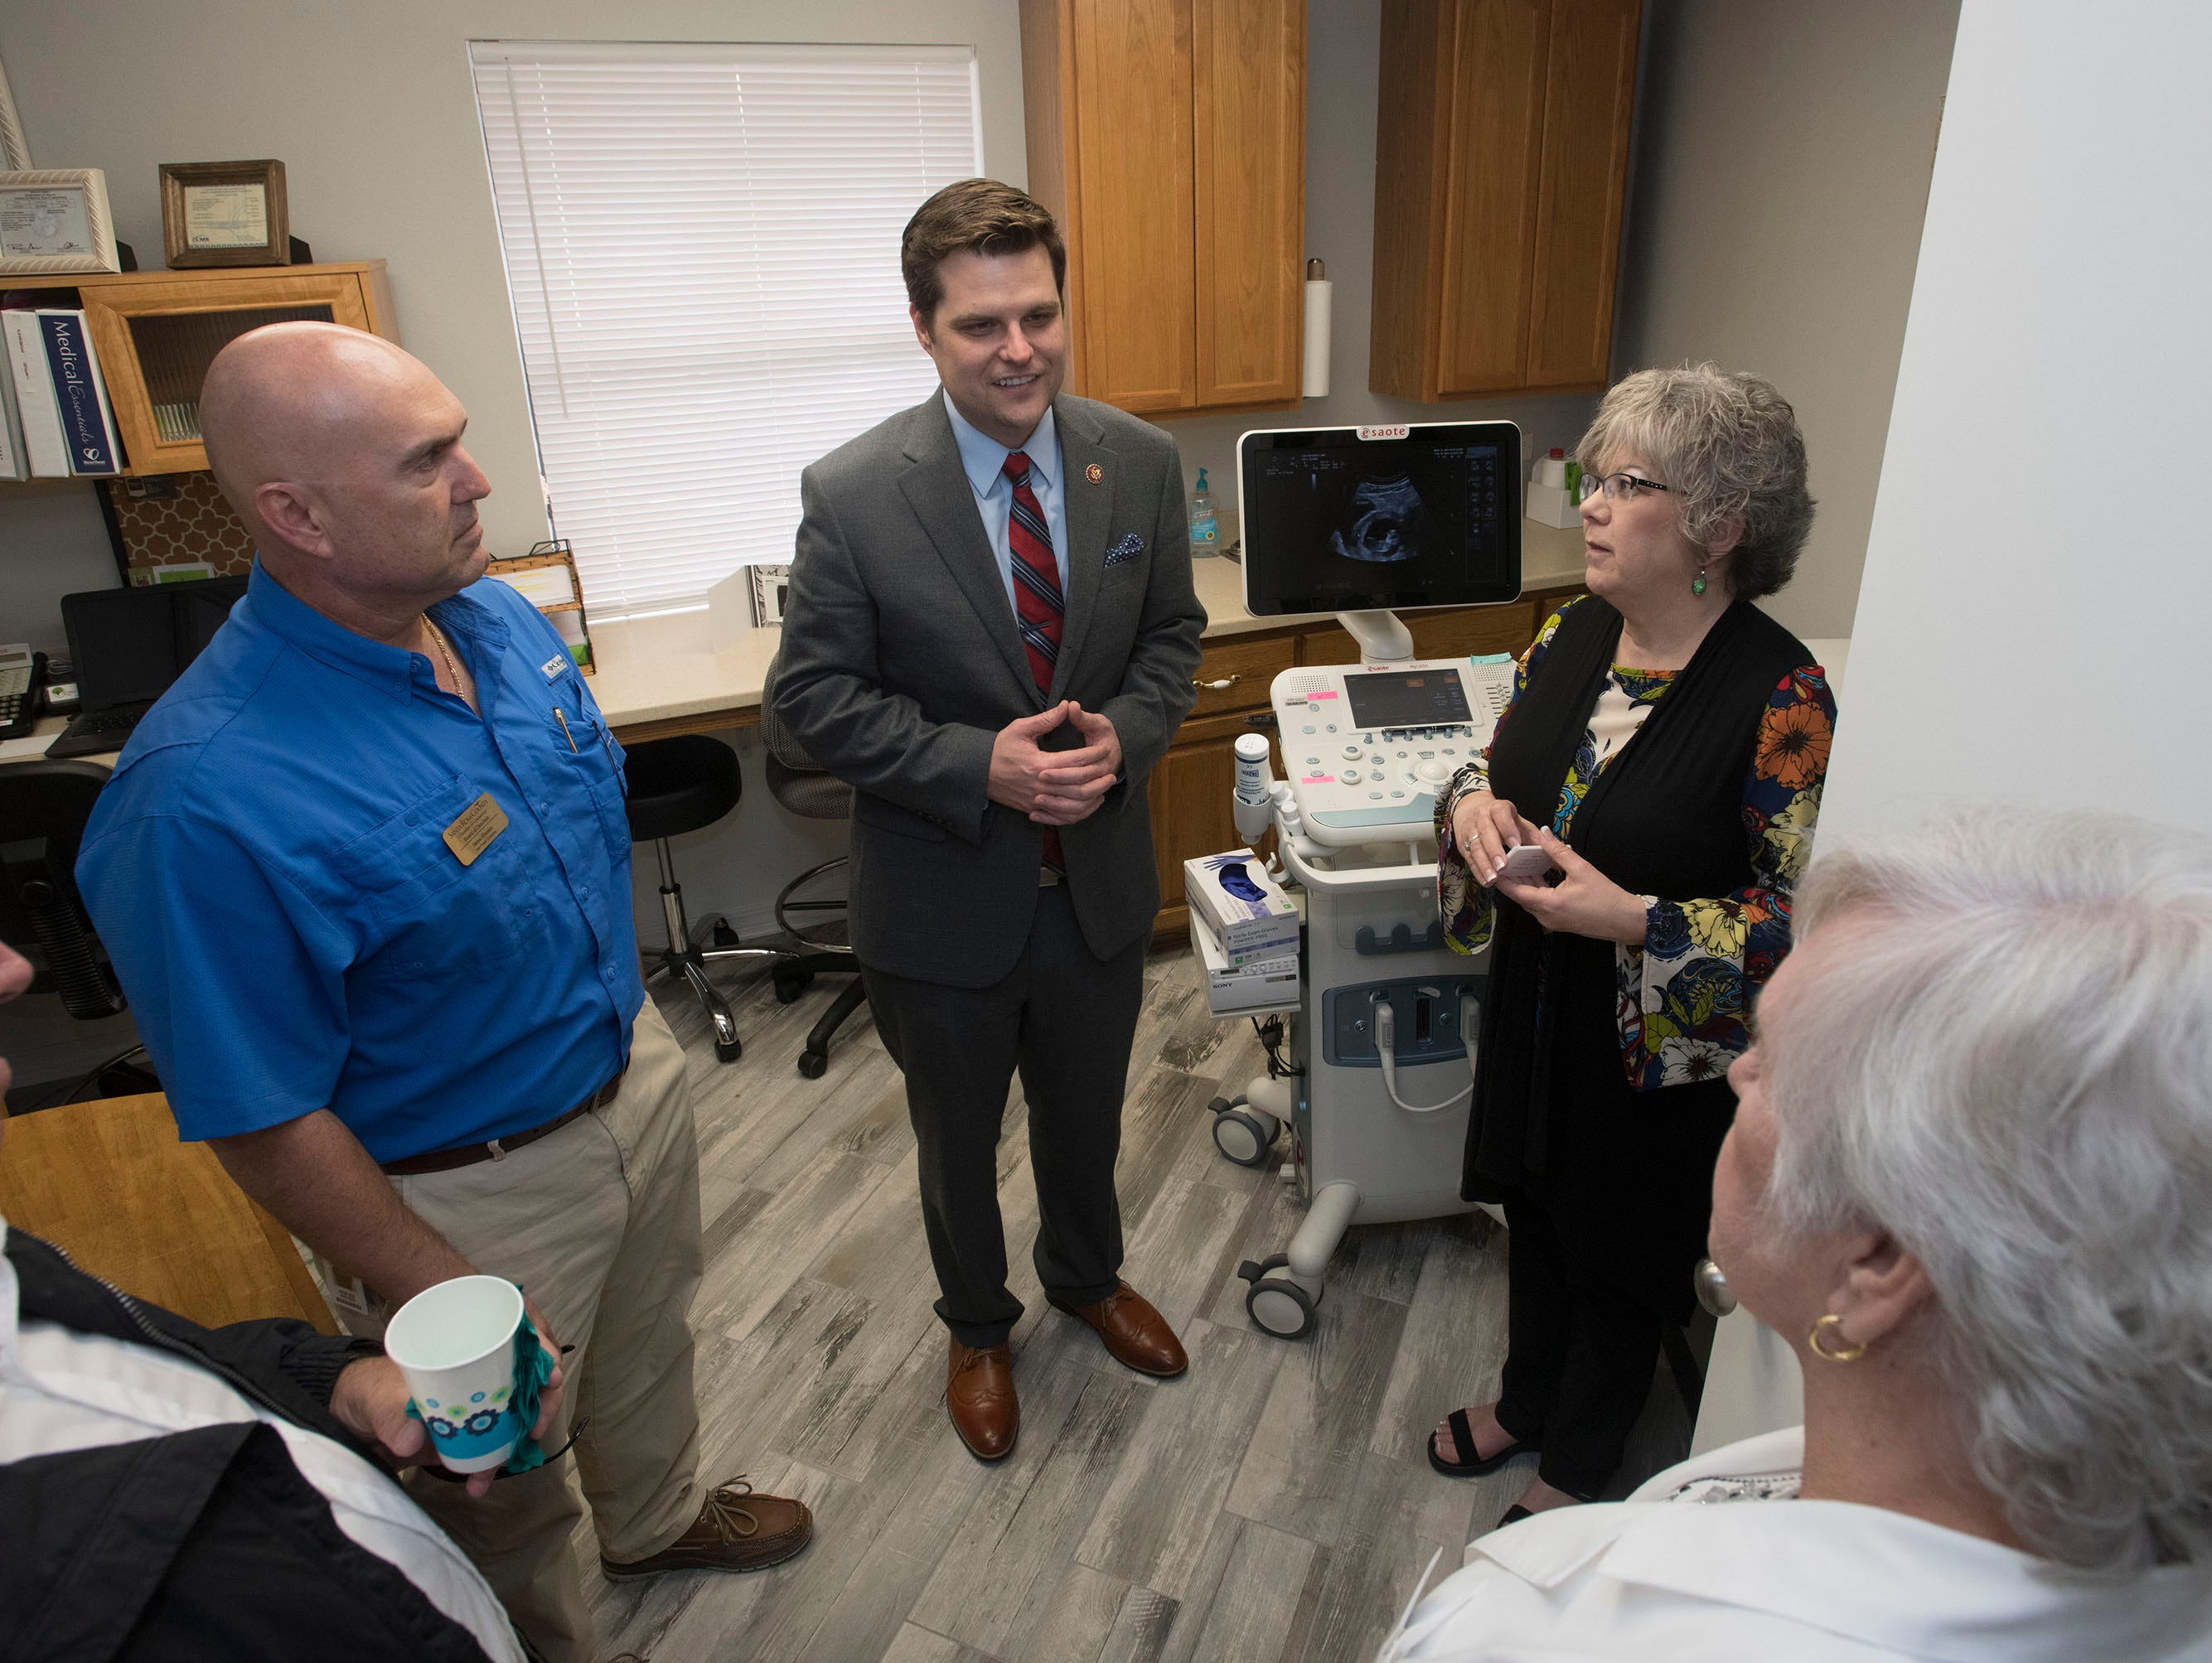 Congressman Matt Gaetz gets a tour of the Life Options Clinic in Milton from the organization's Executive Director, Cindy Roberts, on Friday, March 15, 2019.